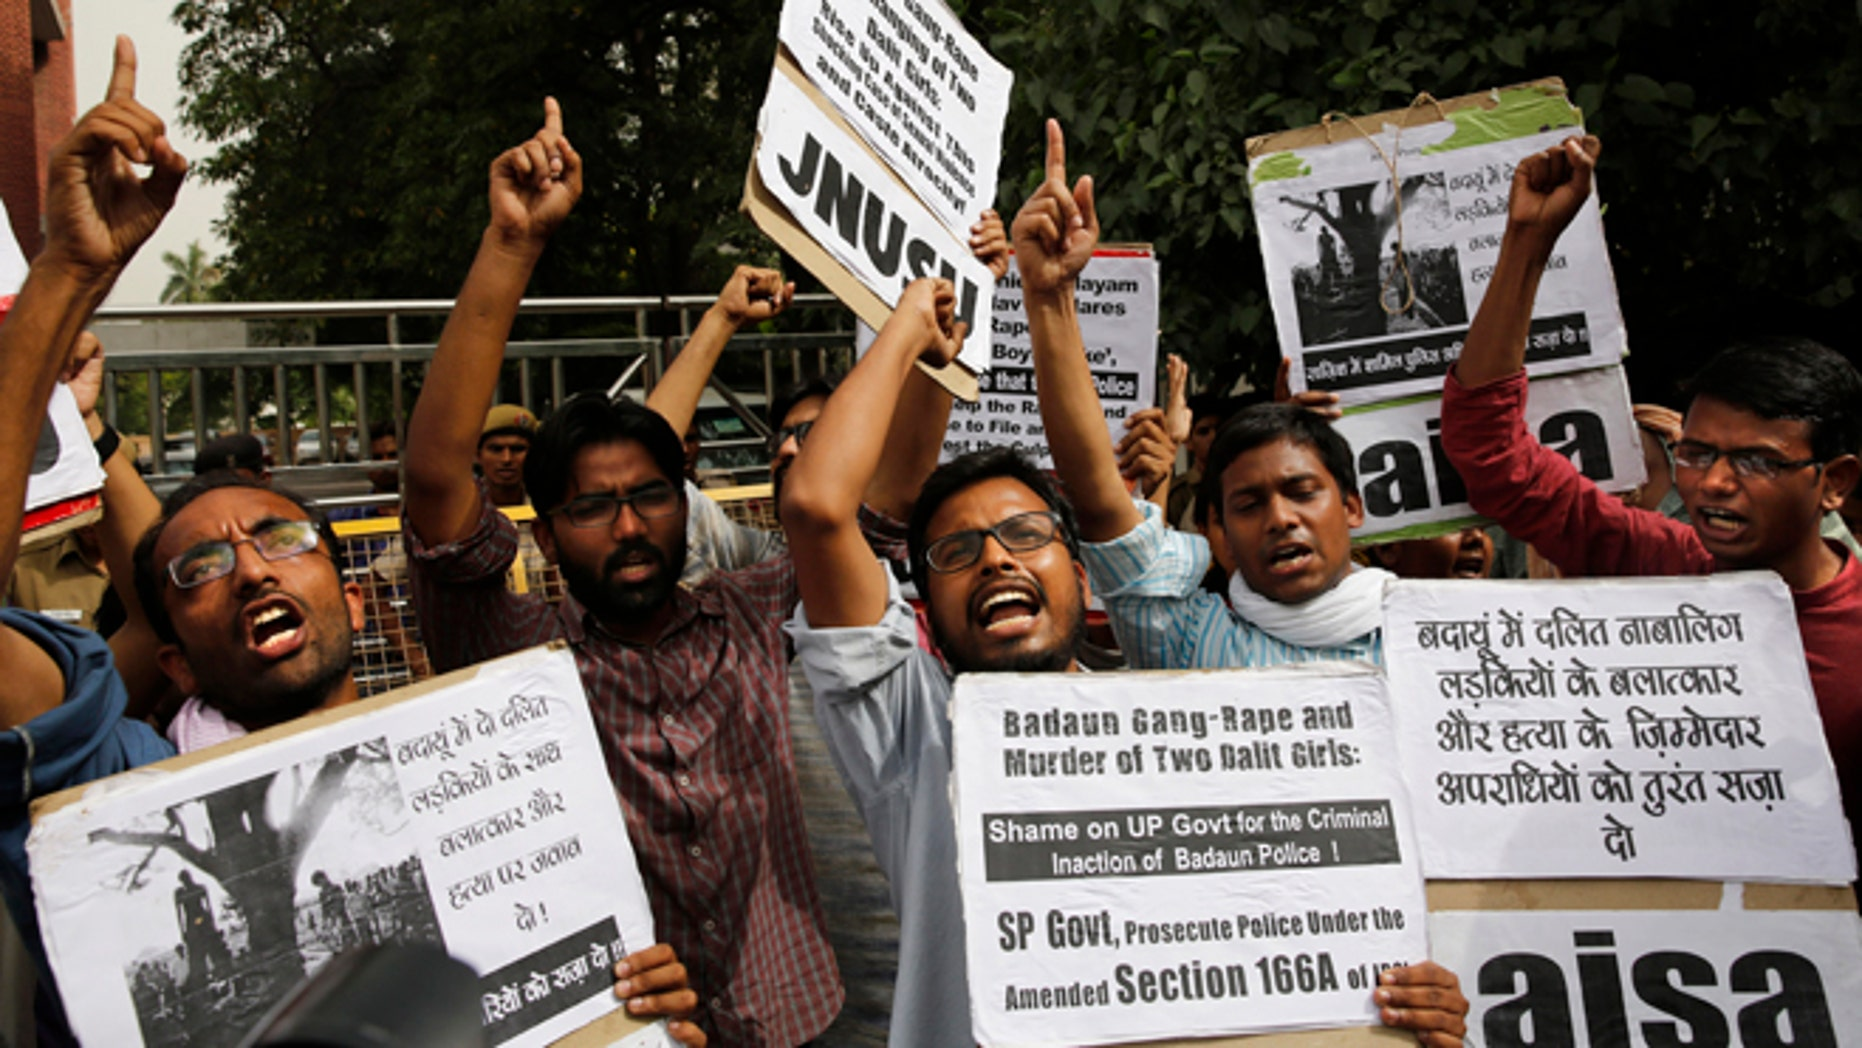 May 30, 2014: Members of Jawaharlal Nehru University Students Union shout slogans during a protest against a gang rape of two teenage girls in Katra village, outside the Uttar Pradesh state house, in New Delhi, India.